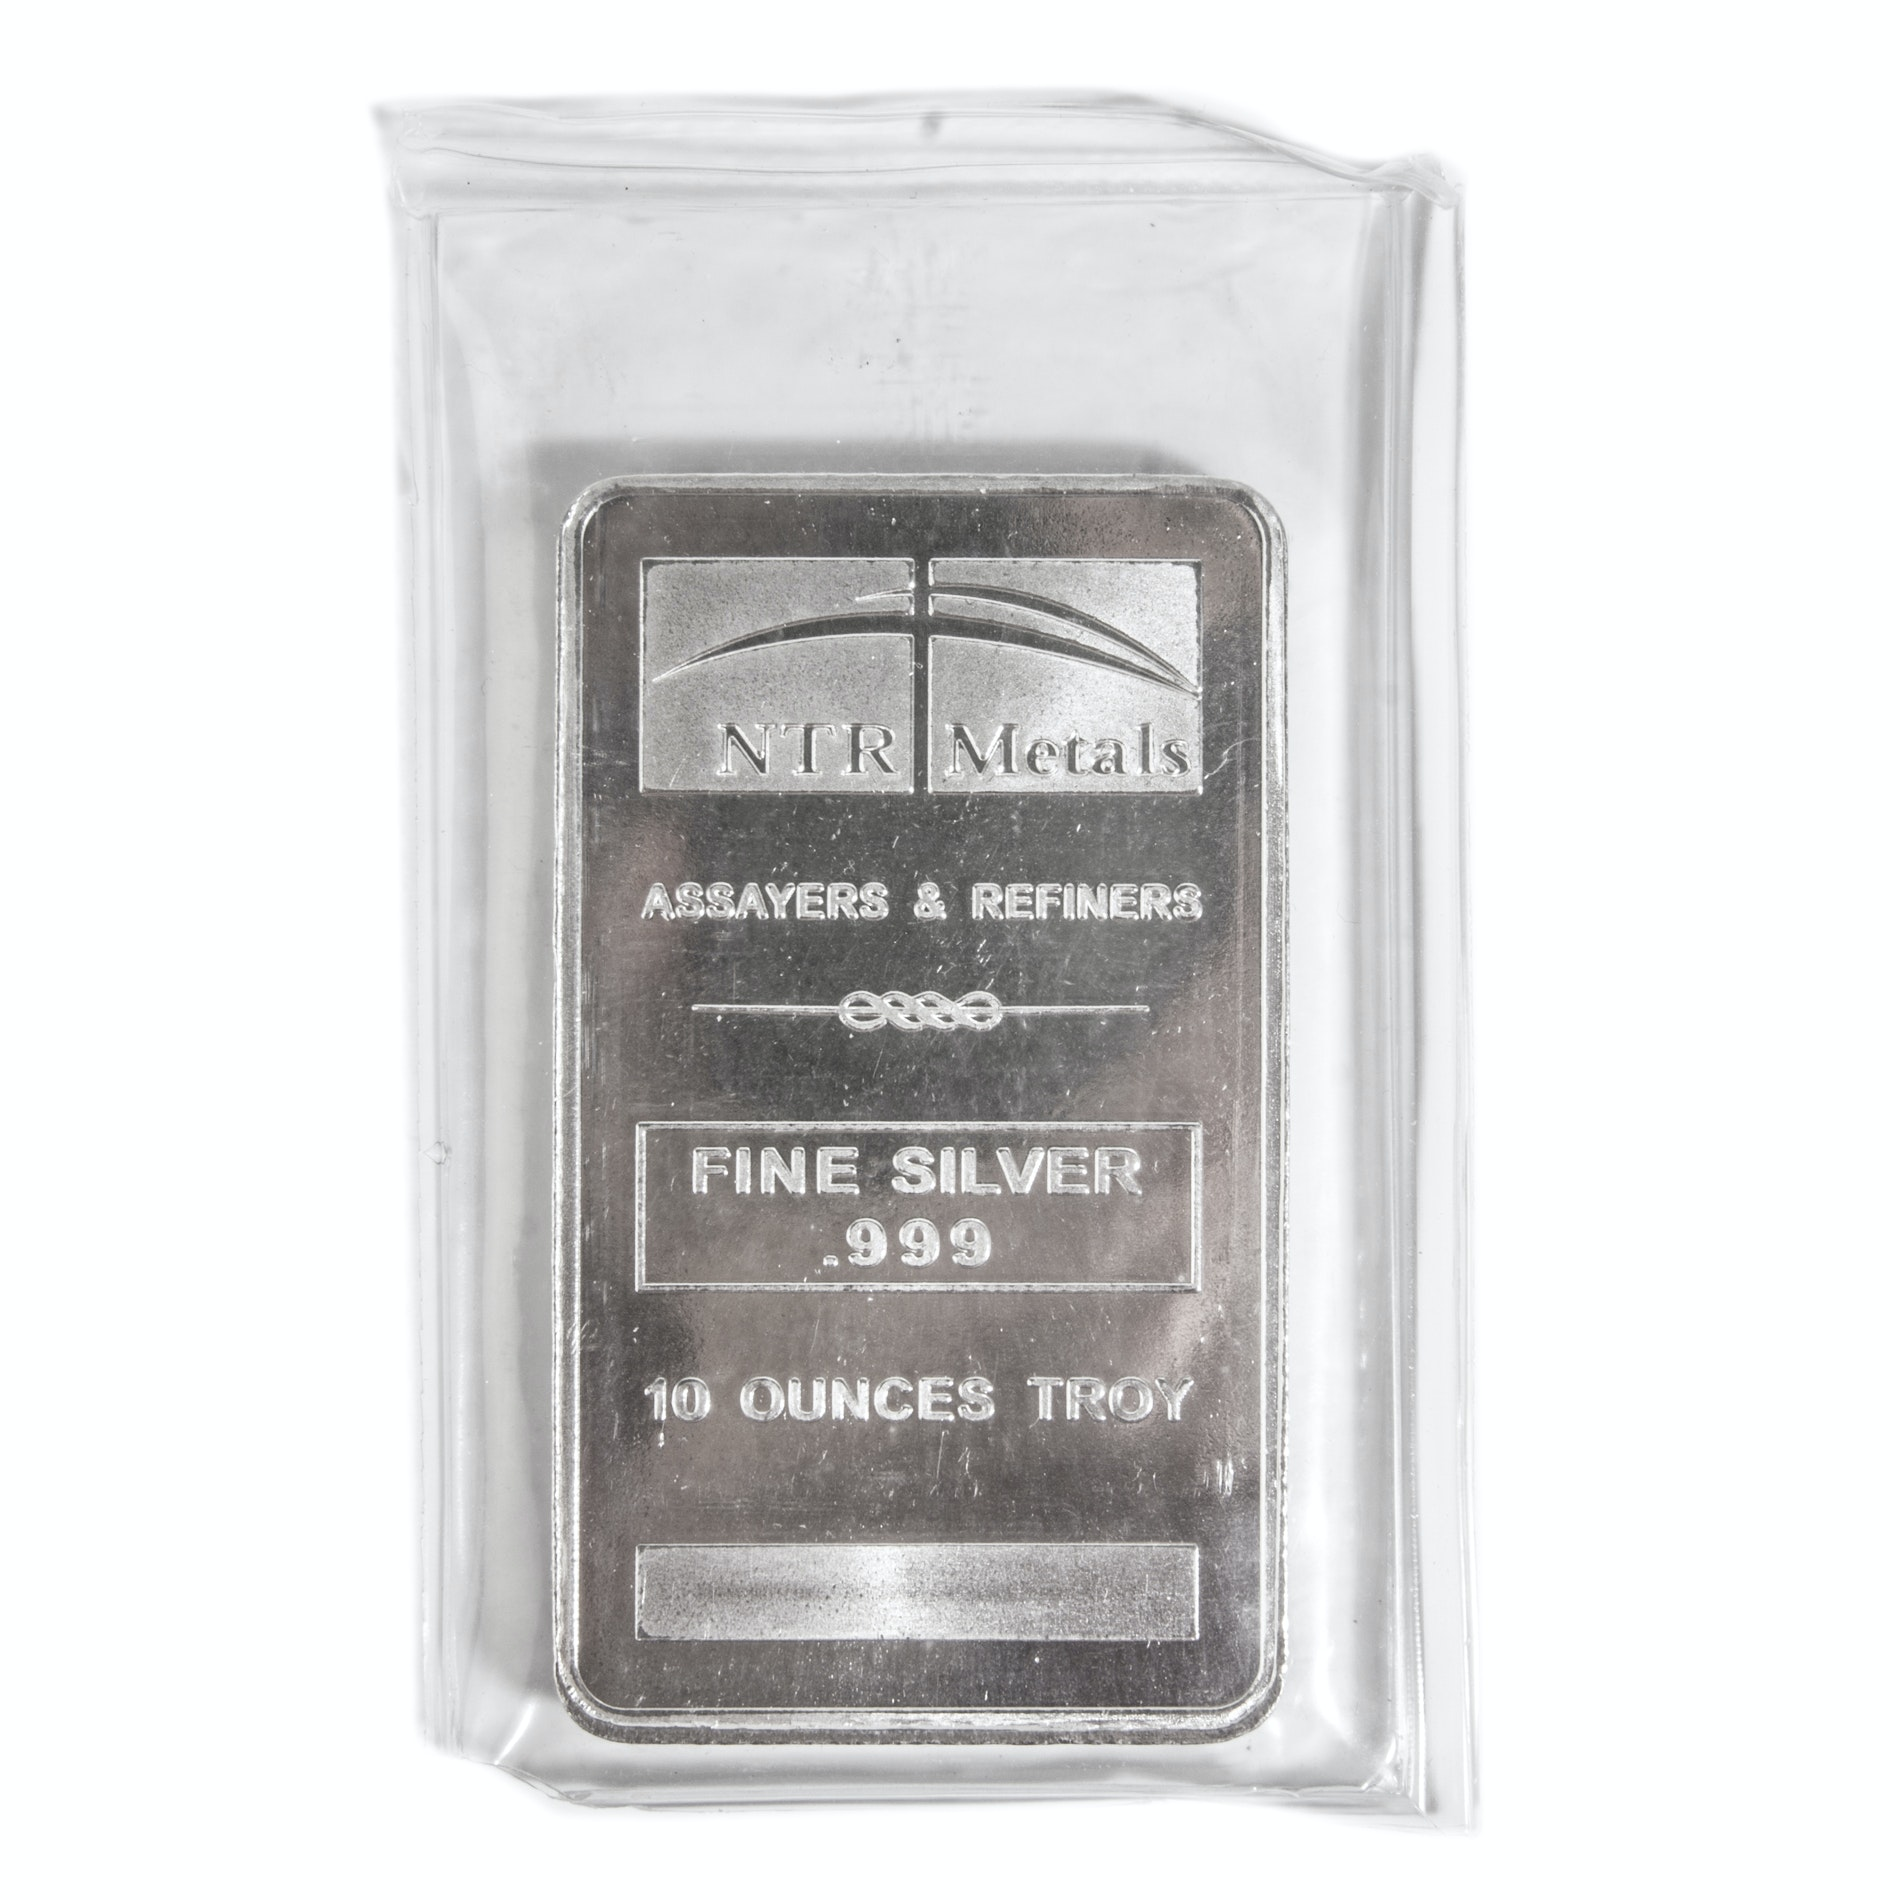 NTR Metals .999 Fine Silver 10 Ounces Troy Bar